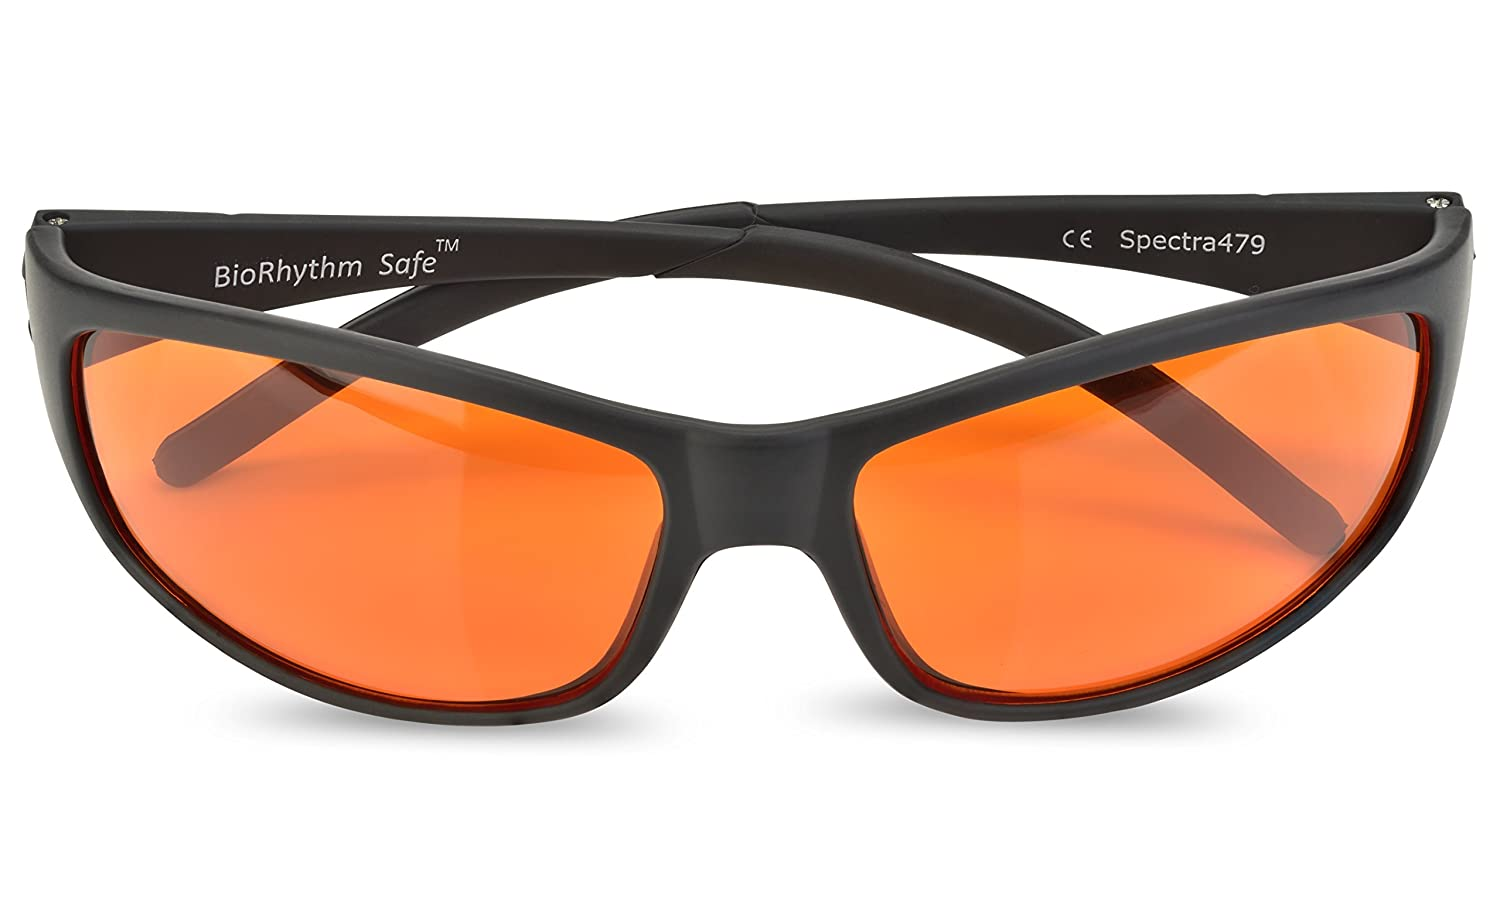 a30137b1eb Amazon.com  Blue Blocking Amber Glasses for Sleep - BioRhythm Safe(TM) -  Nighttime Eye Wear - Special Orange Tinted Glasses Help You Sleep and Relax  Your ...